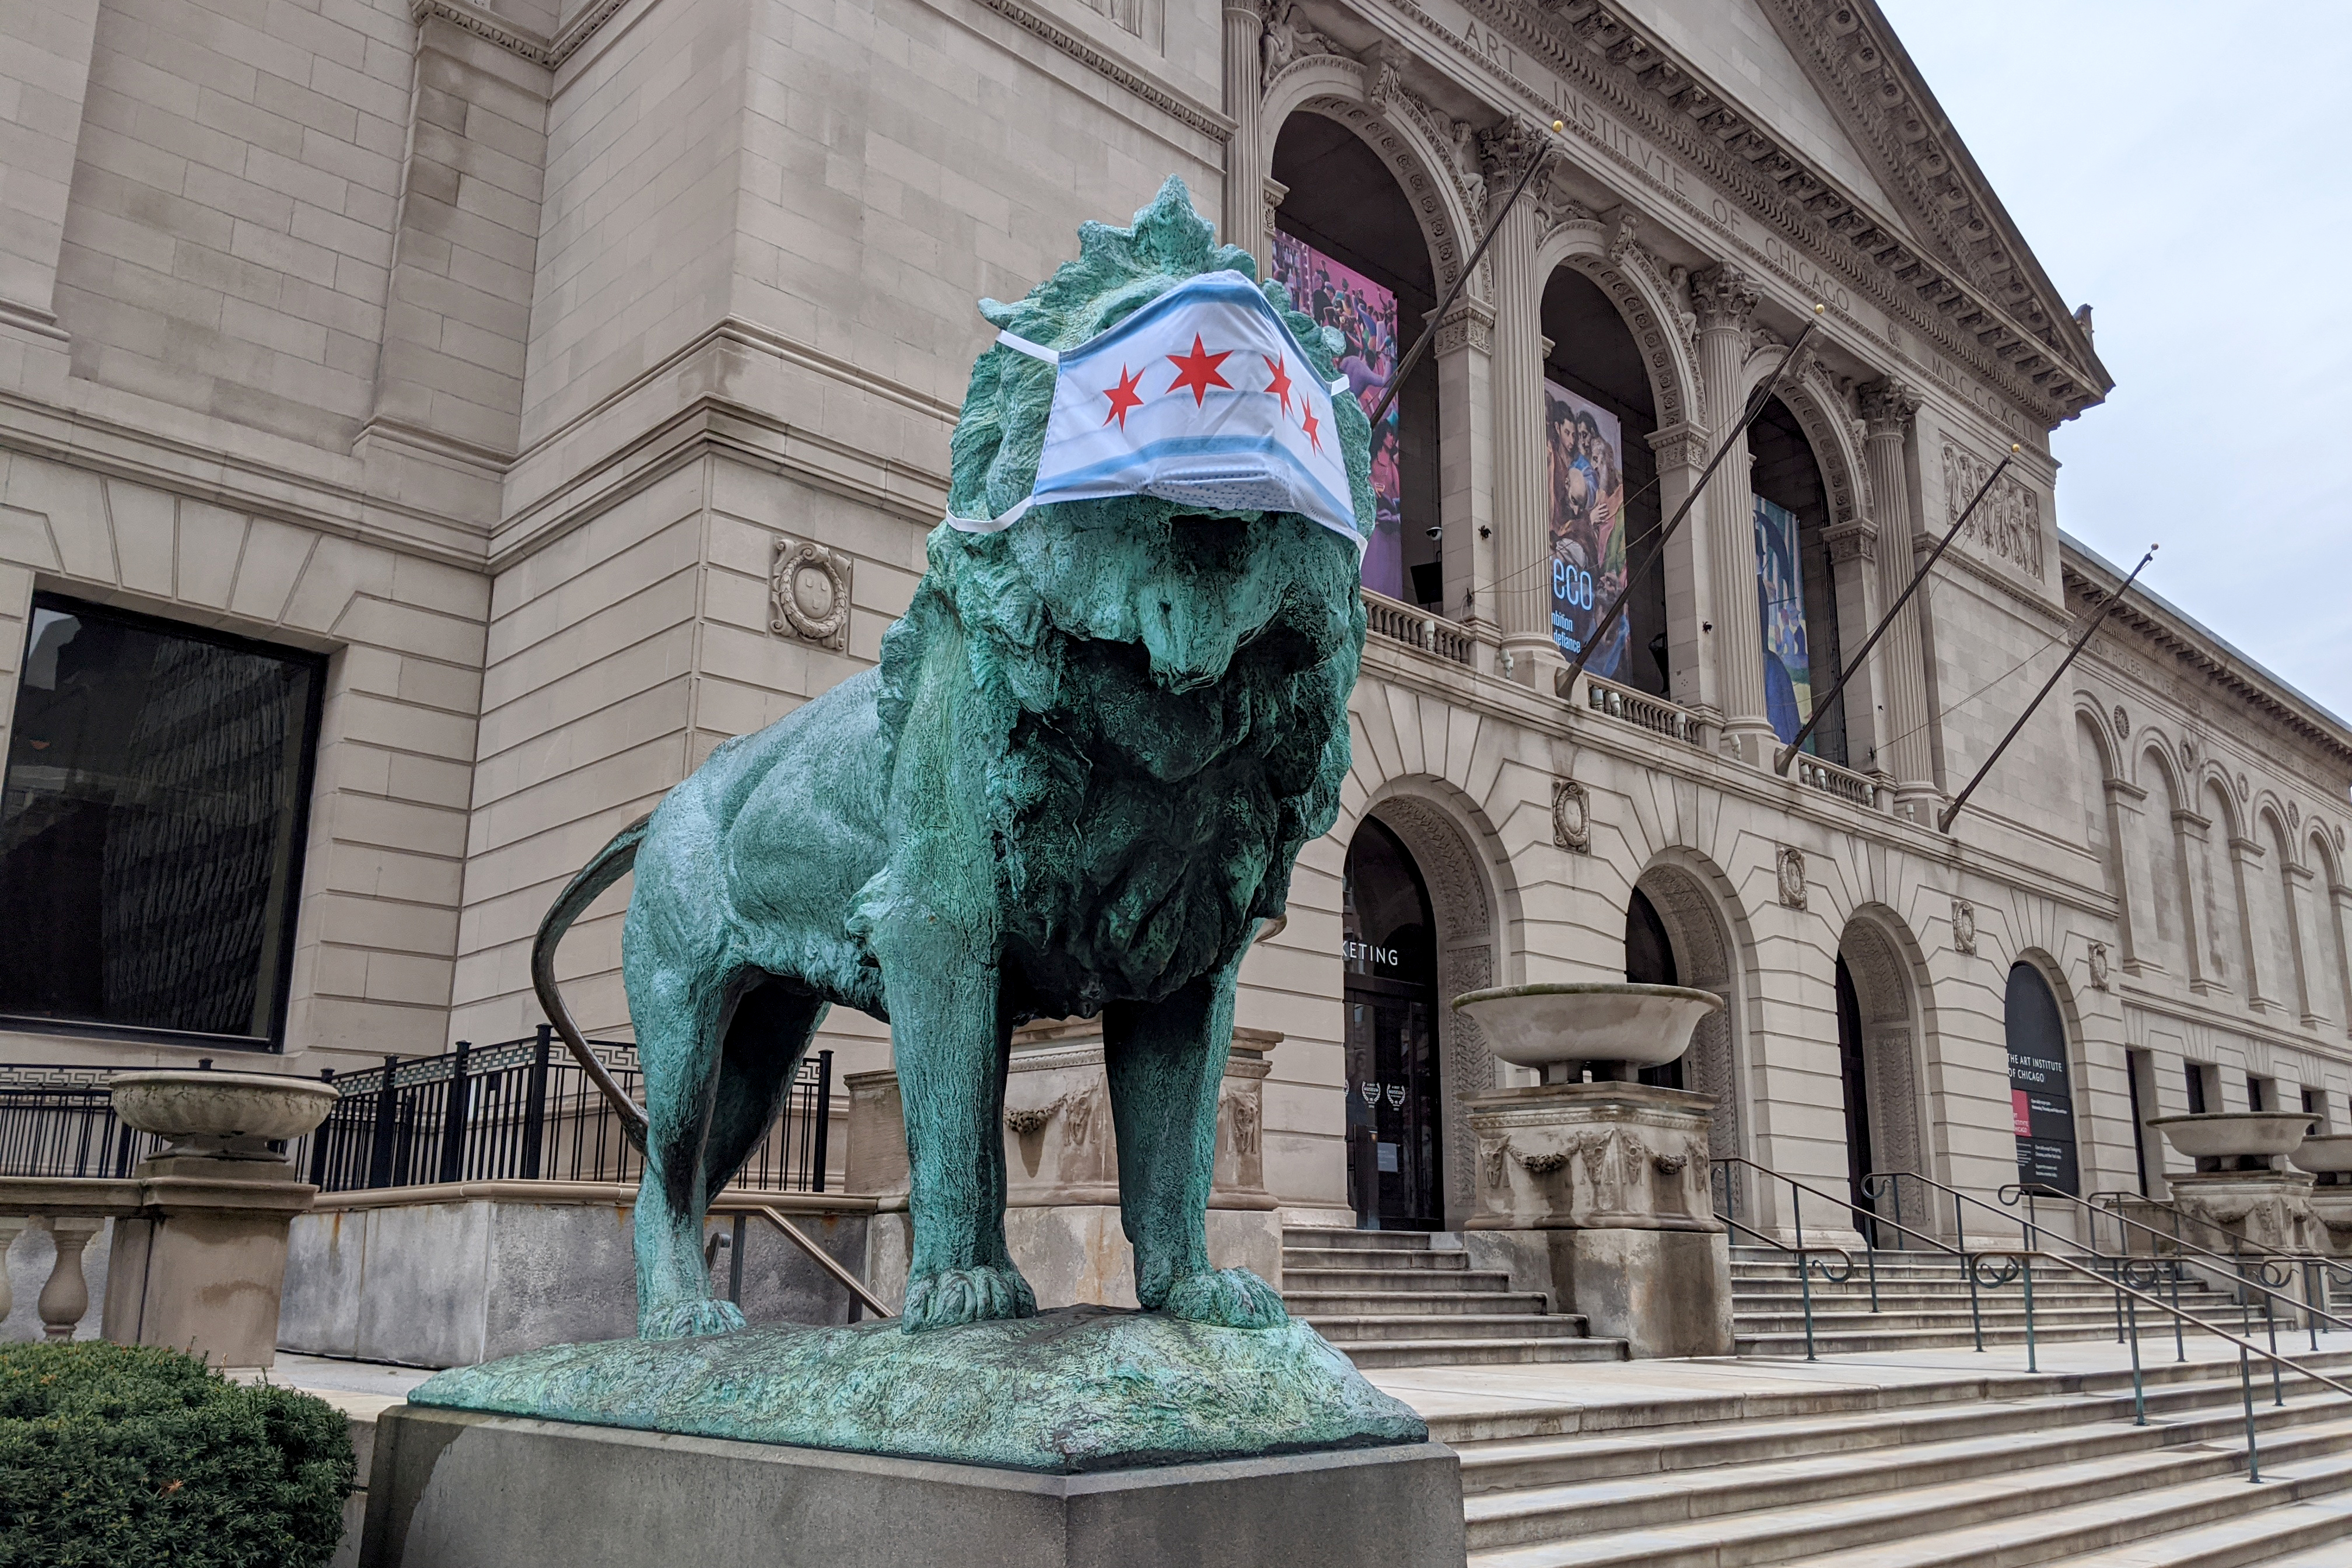 The lions wear face masks outside the The Art Institute of Chicago during the coronavirus pandemic, Thursday afternoon, April 30, 2020.